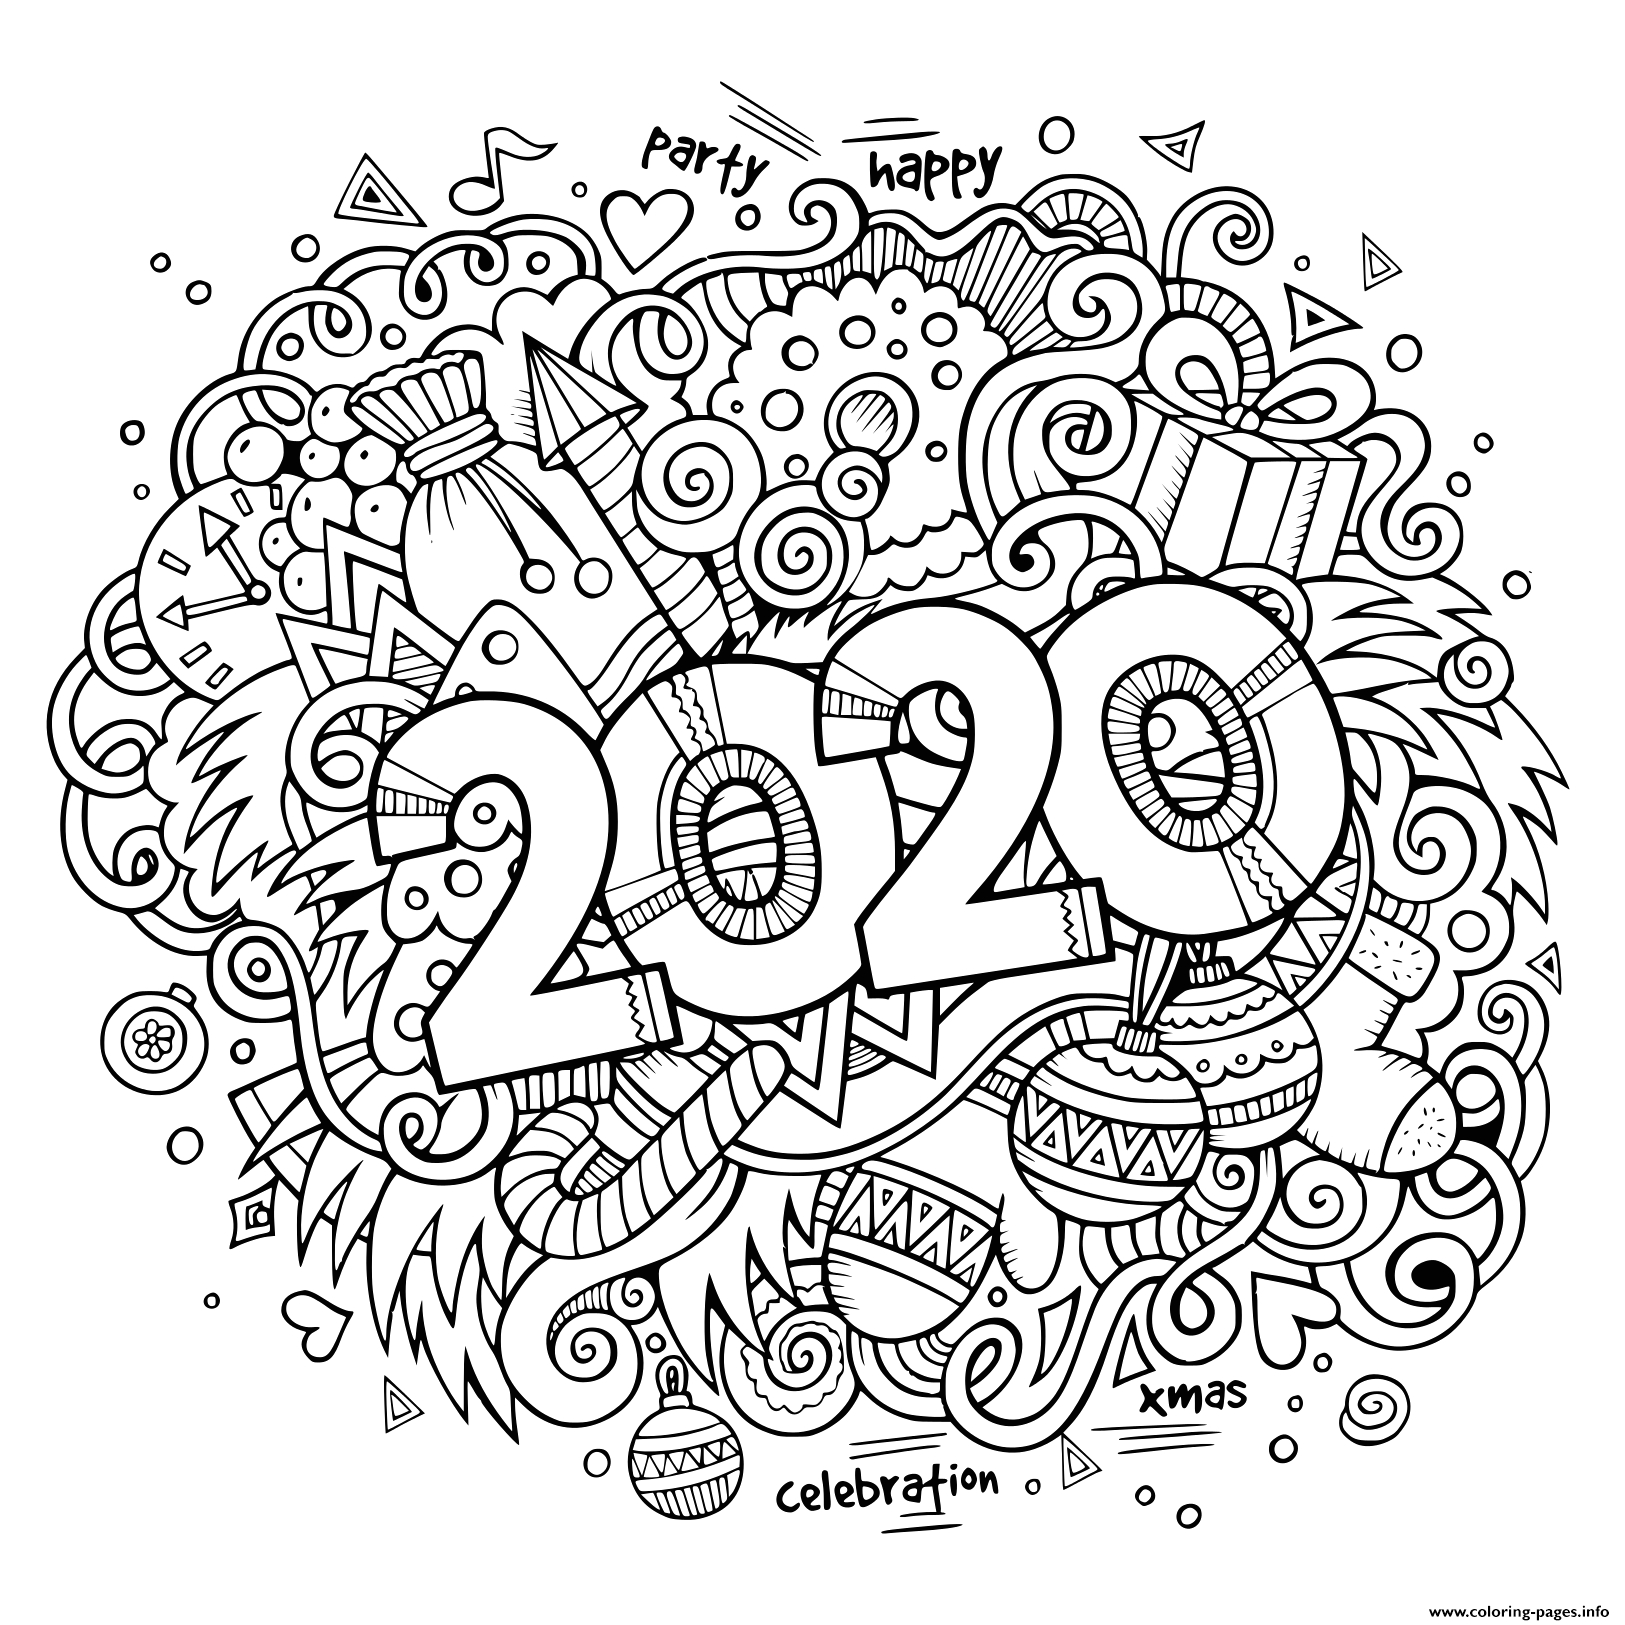 Free Printable New Years Coloring Pages 2020 New Year 2020 Doodles Objects and Elements Poster Design